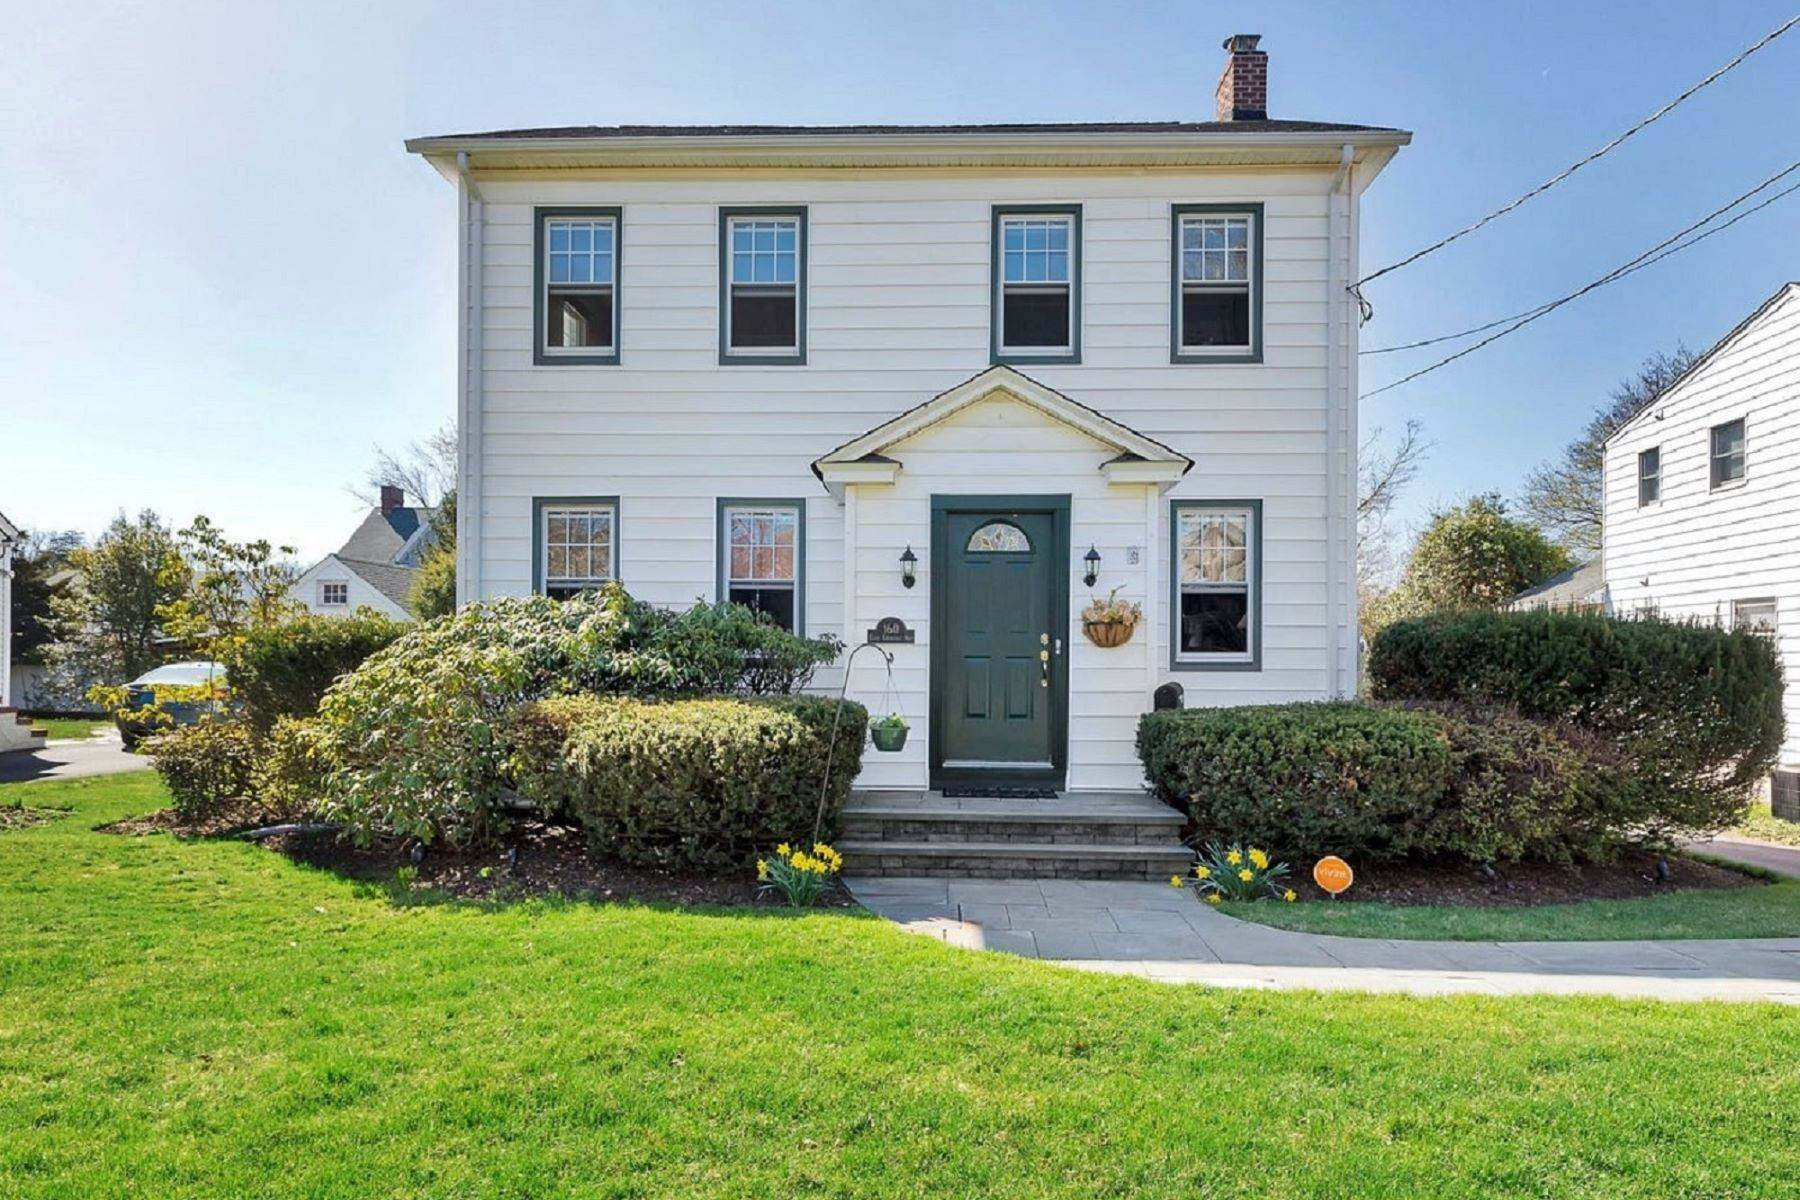 Single Family Homes for Sale at Storybook Colonial 160 E Chestnut Ave Metuchen, New Jersey 08840 United States